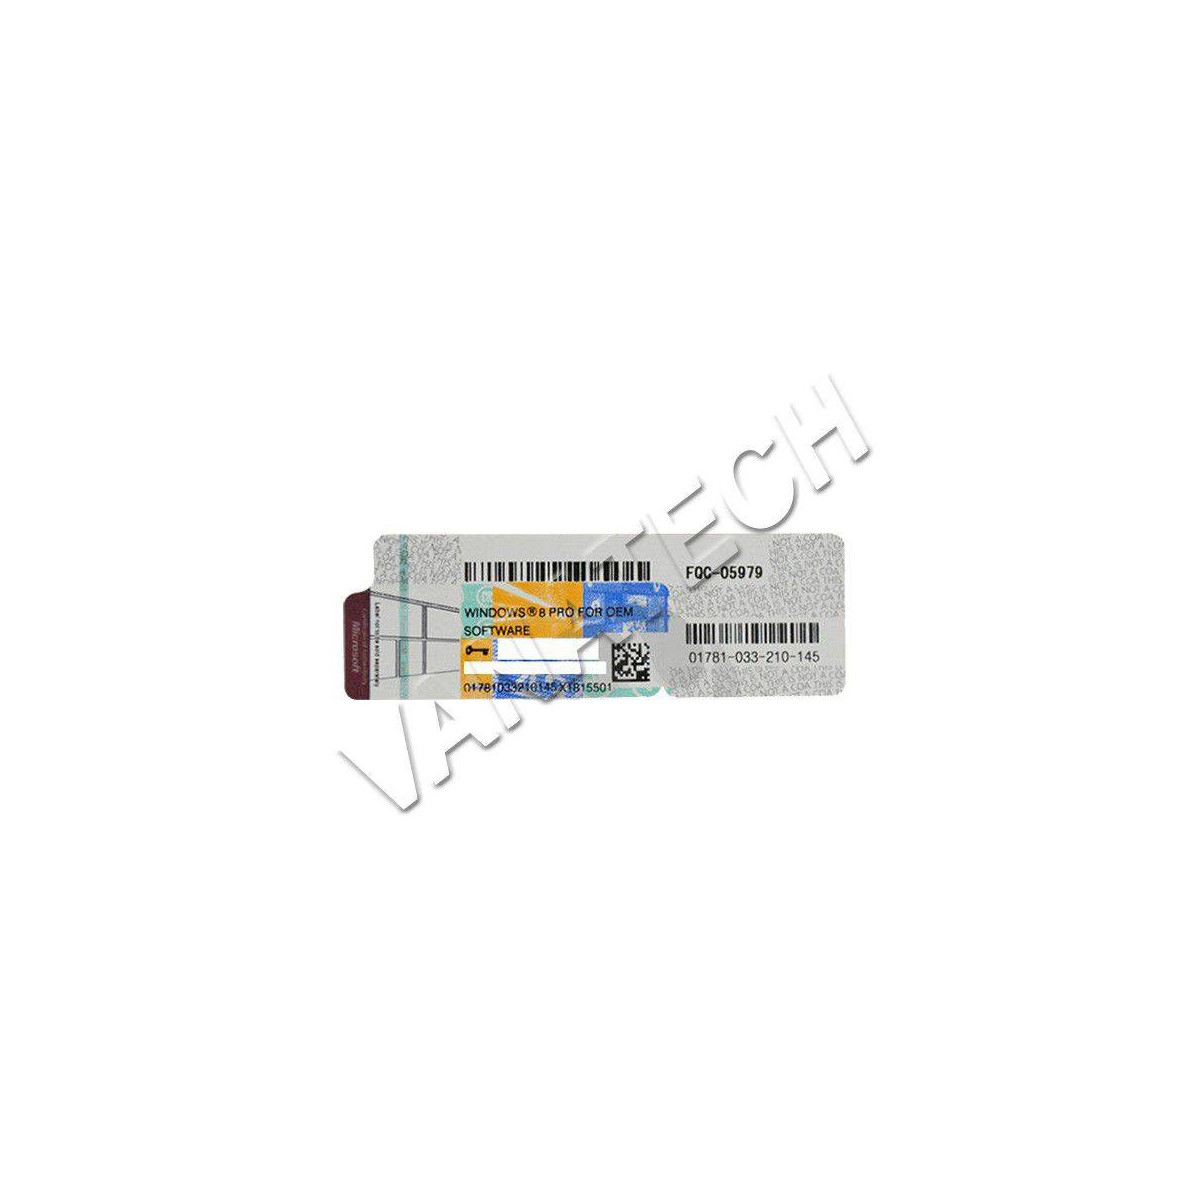 VETRO TOUCH SCREEN + LCD DISPLAY RETINA + FRAME VETRO PER APPLE IPHONE 5C NERO